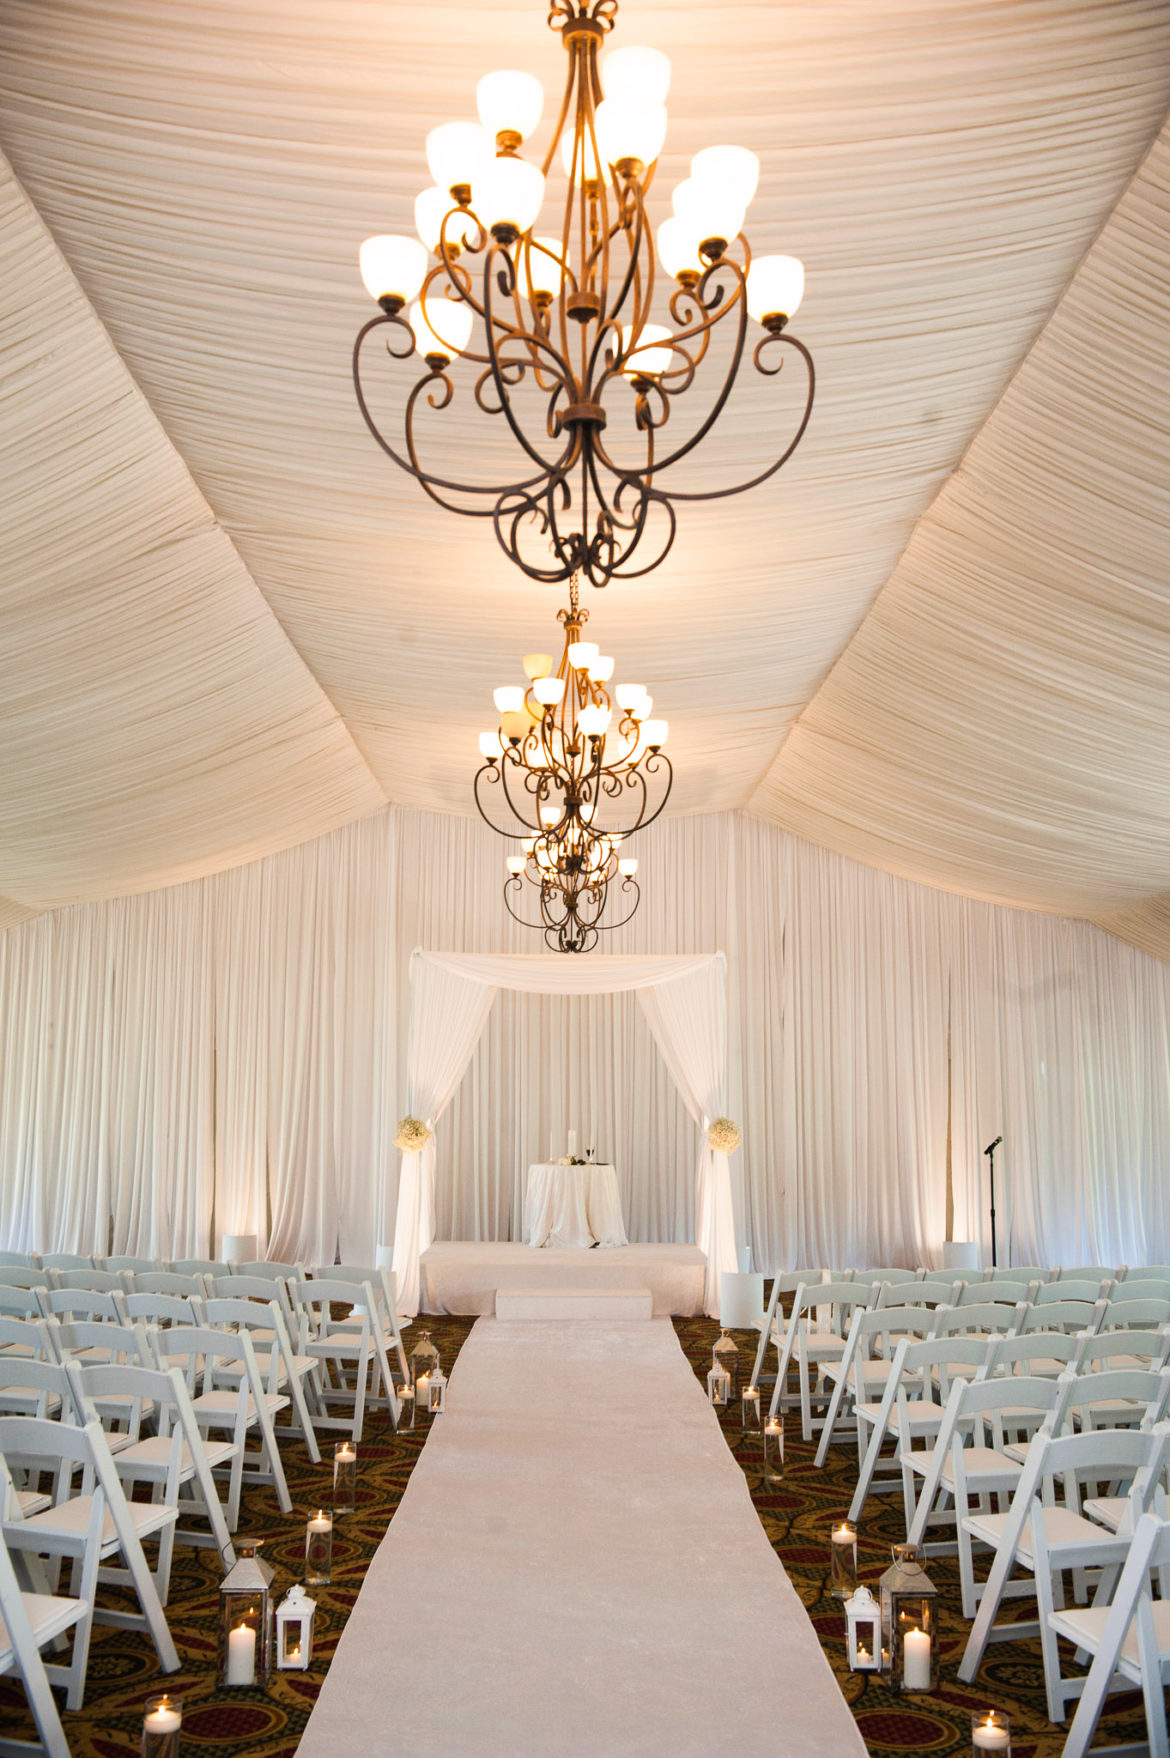 Elegant_Event_Lighting_Chicago_Eaglewood_Resort_Spa_Itasca_Wedding_Draping_White_Tent_Decor_Aisle_Runner_Bridal_Canopy_Lanterns